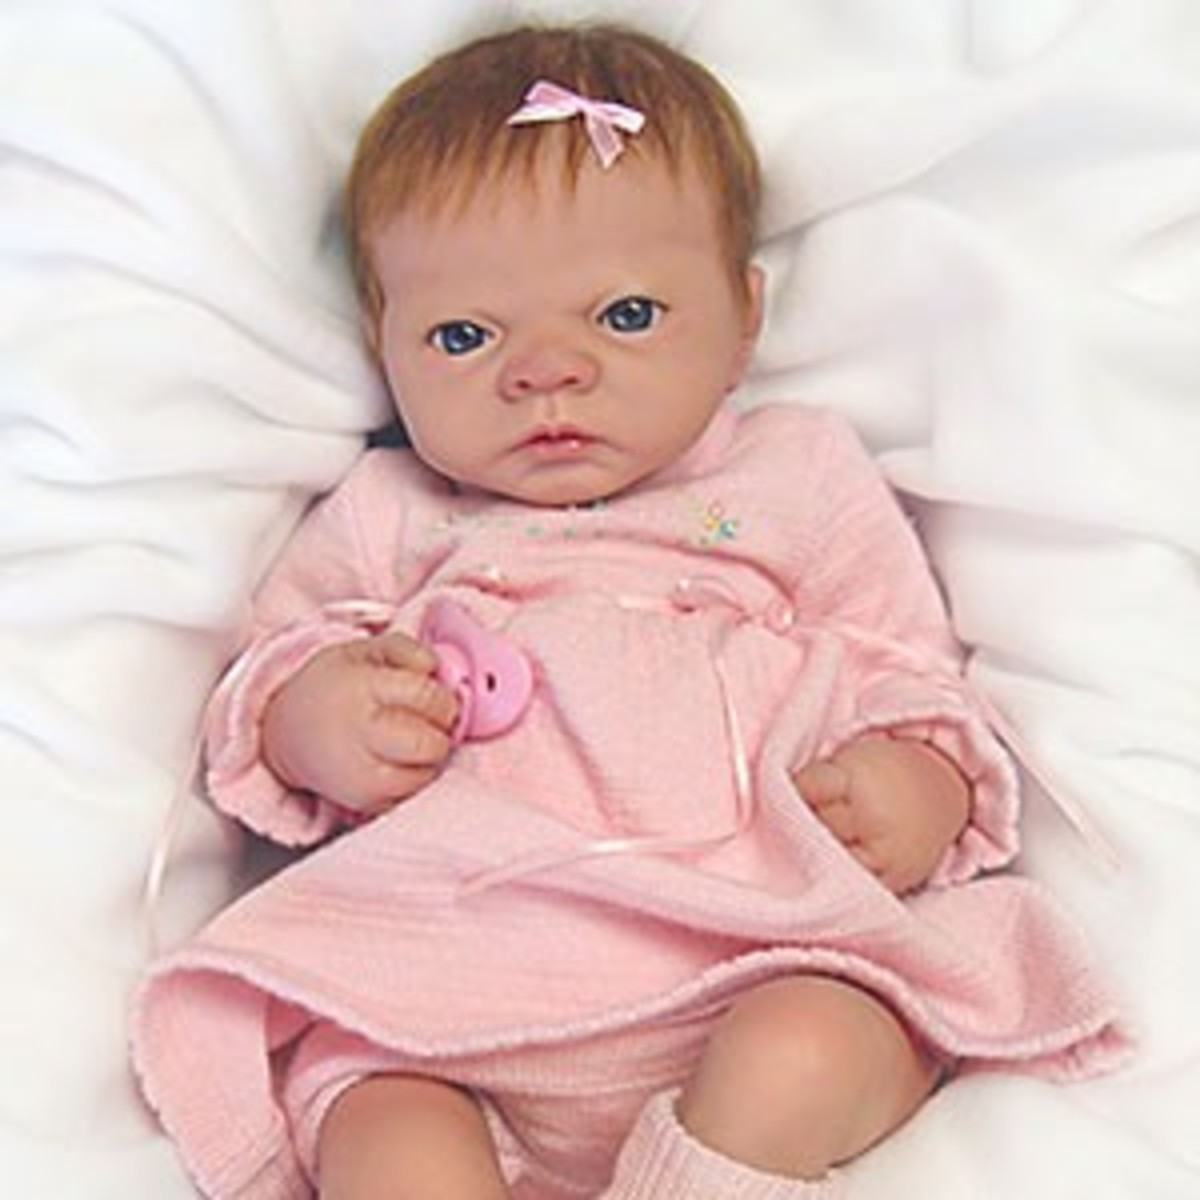 Are the Women who buy these realistic baby dolls normal?